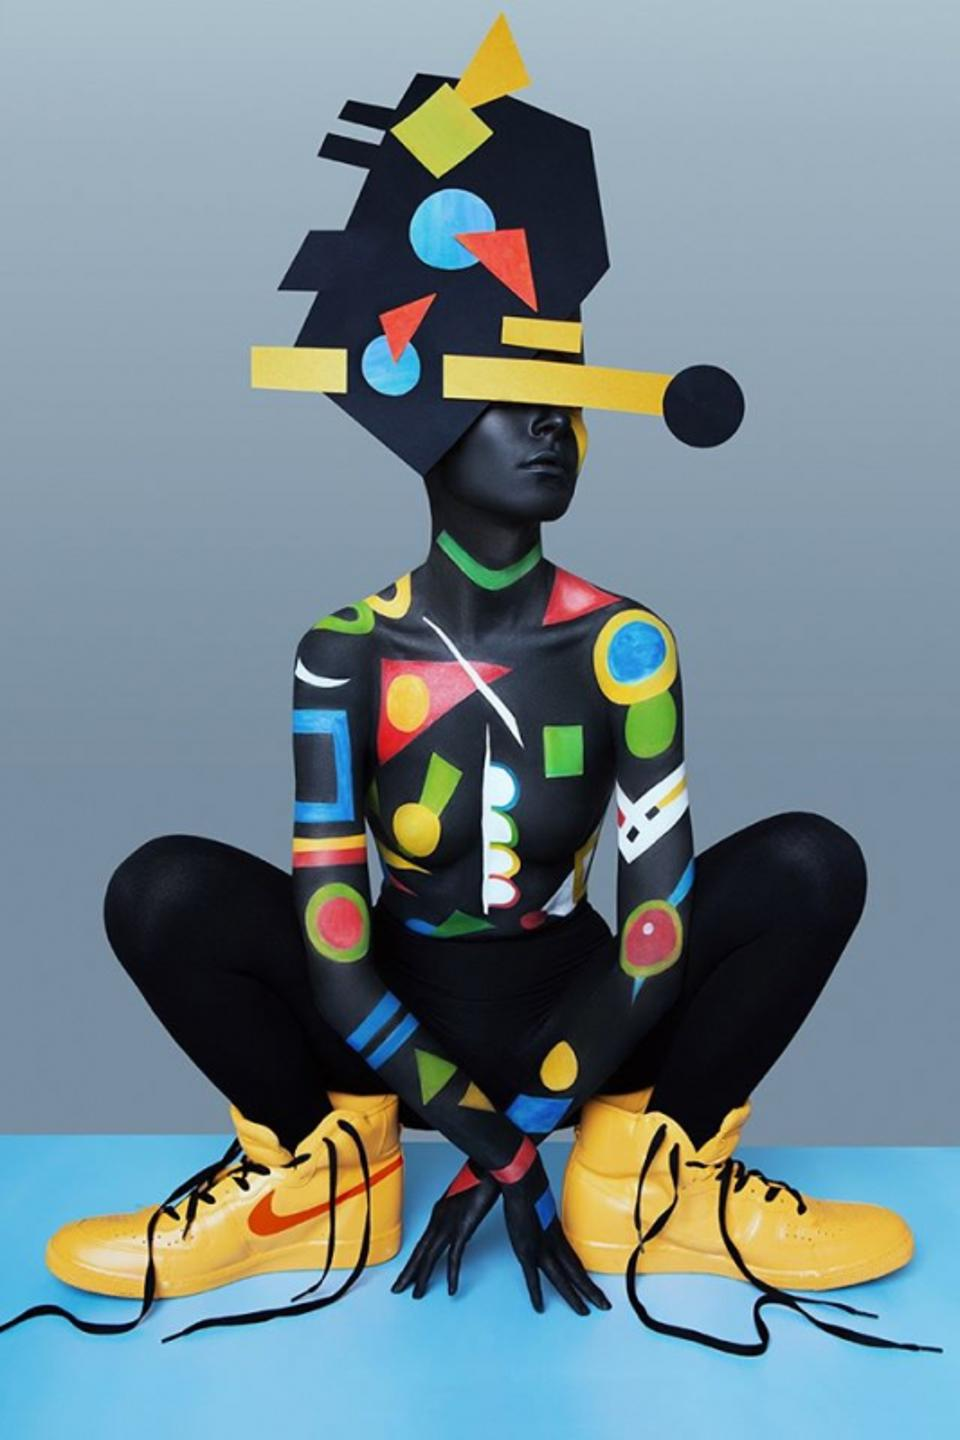 Geometric lines and big yellow shoes on model